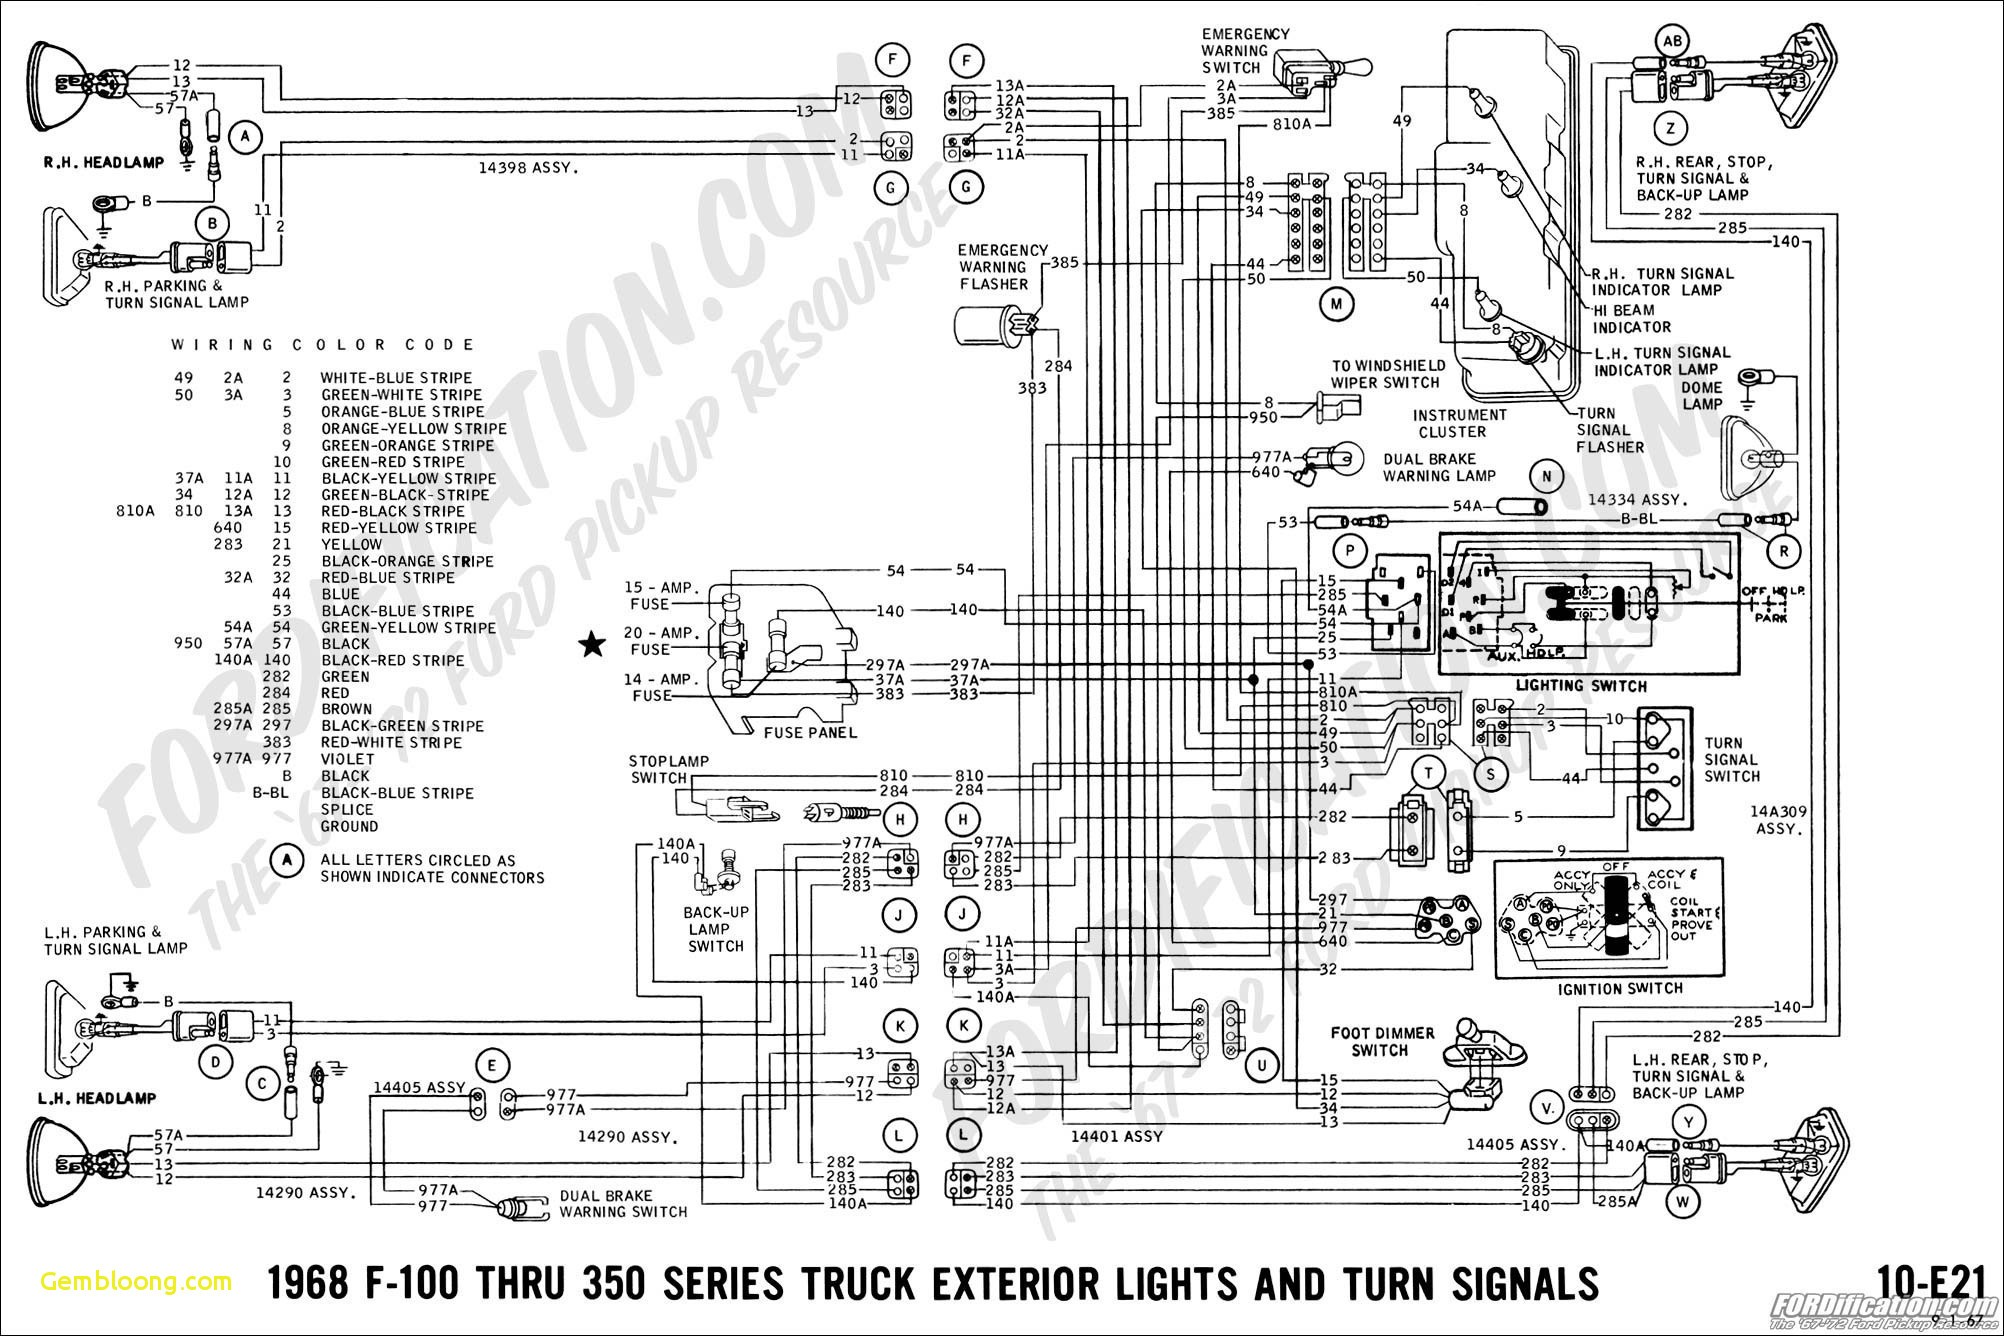 1965 Ford F 100 Instrument Panel Wiring Schematic Diagram Data 1970 Mustang Truck Turn Signal Diagrama De Cableado Auto Electrical